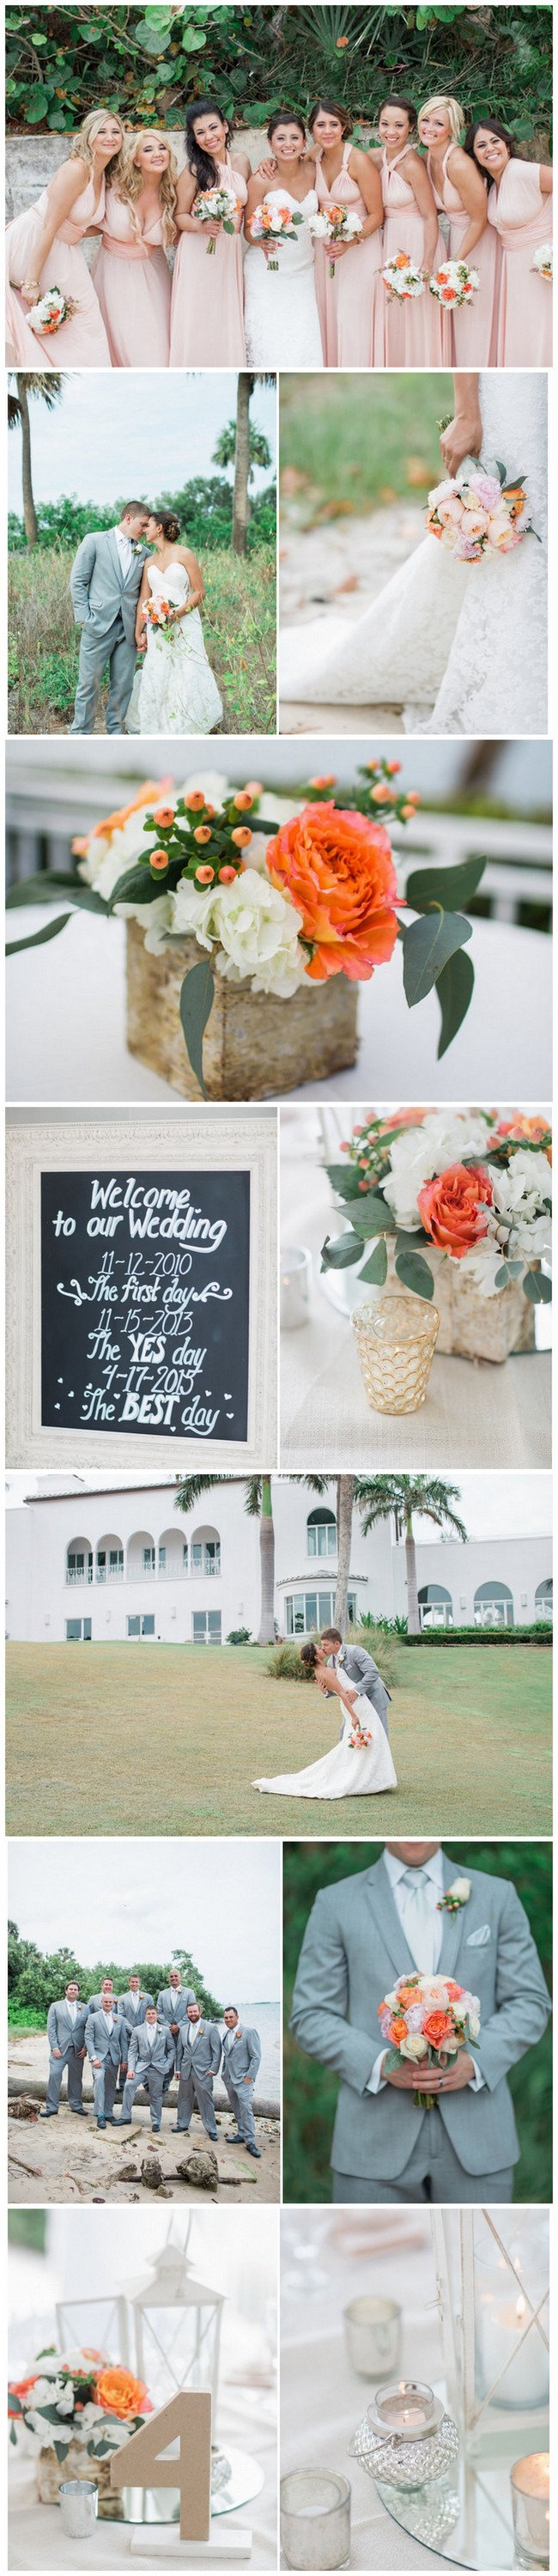 Coral Spring Florida Wedding  - Jessica Bordner Photography. See more gorgeous details here: https://confettidaydreams.com/vintage-spring-florida-wedding/